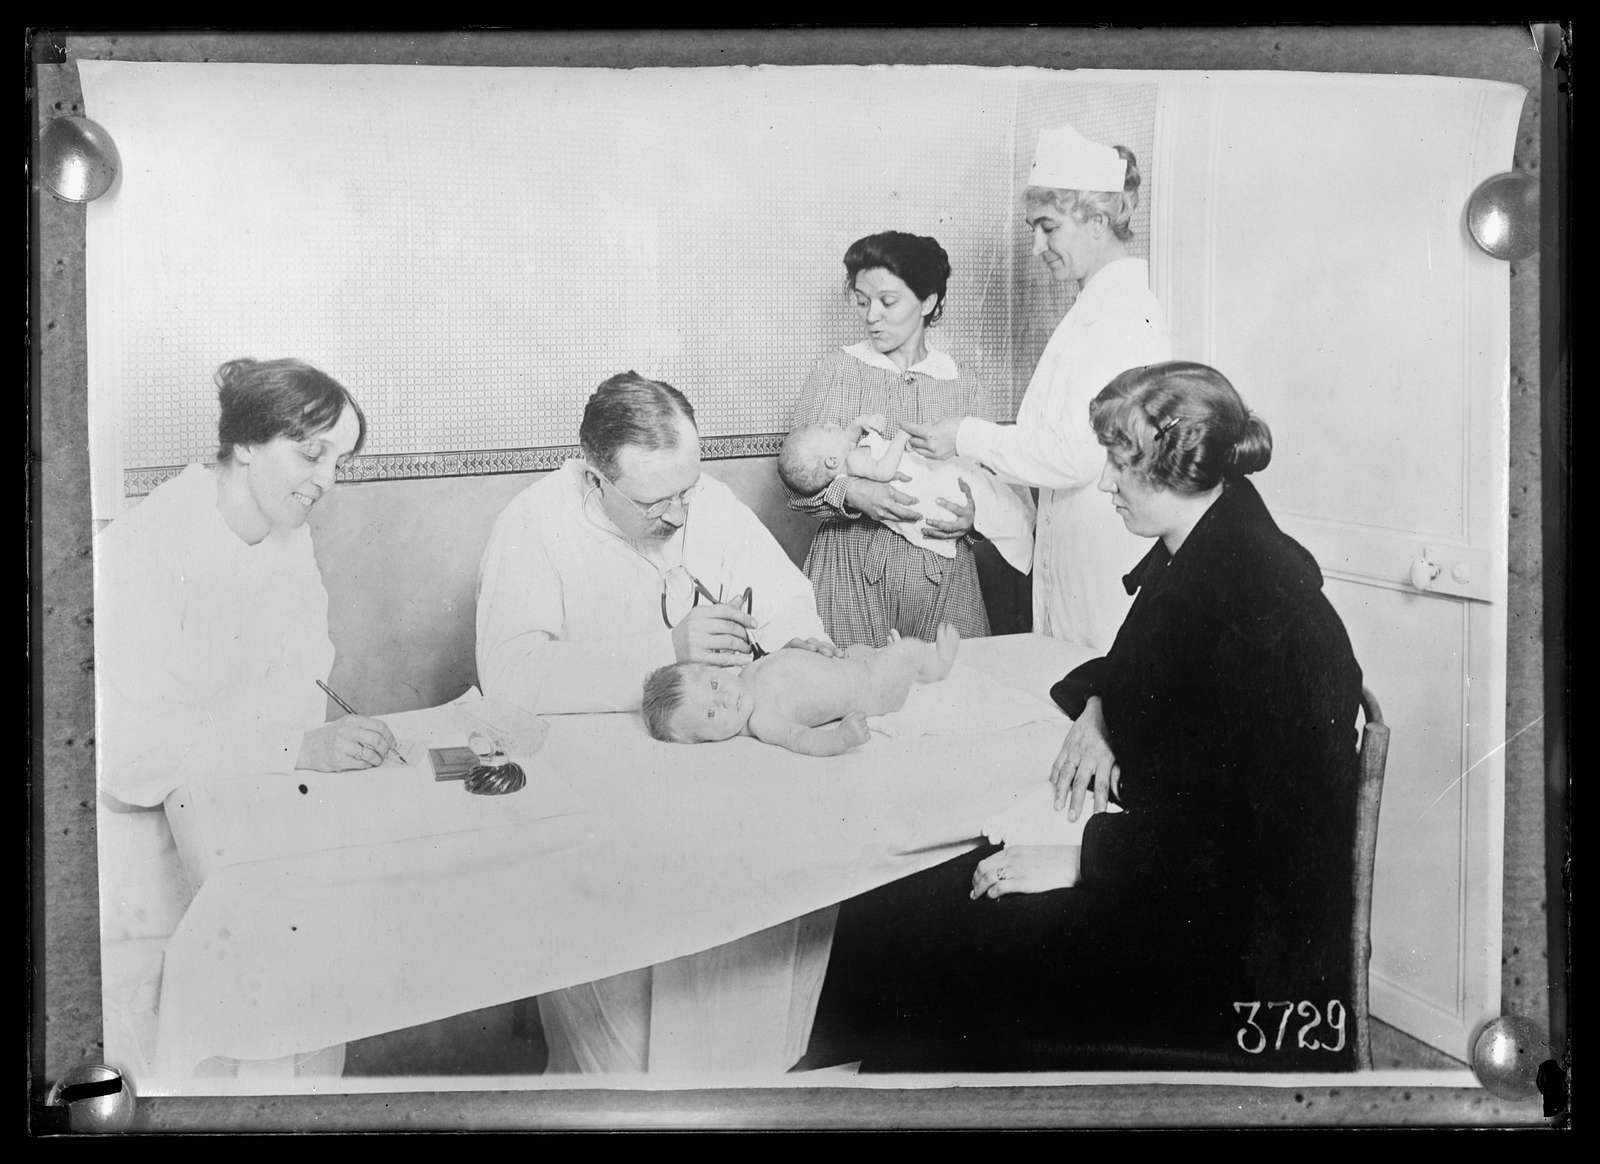 The mothers in the poorer quarters of Paris appreciate the opportunity to bring their babies to the American Red Cross Children's Dispensaries which have been established in many different neighborhoods. The picture shows Dr. Baldwin examining a baby at the dispensary 35 Rue Dareay, Paris